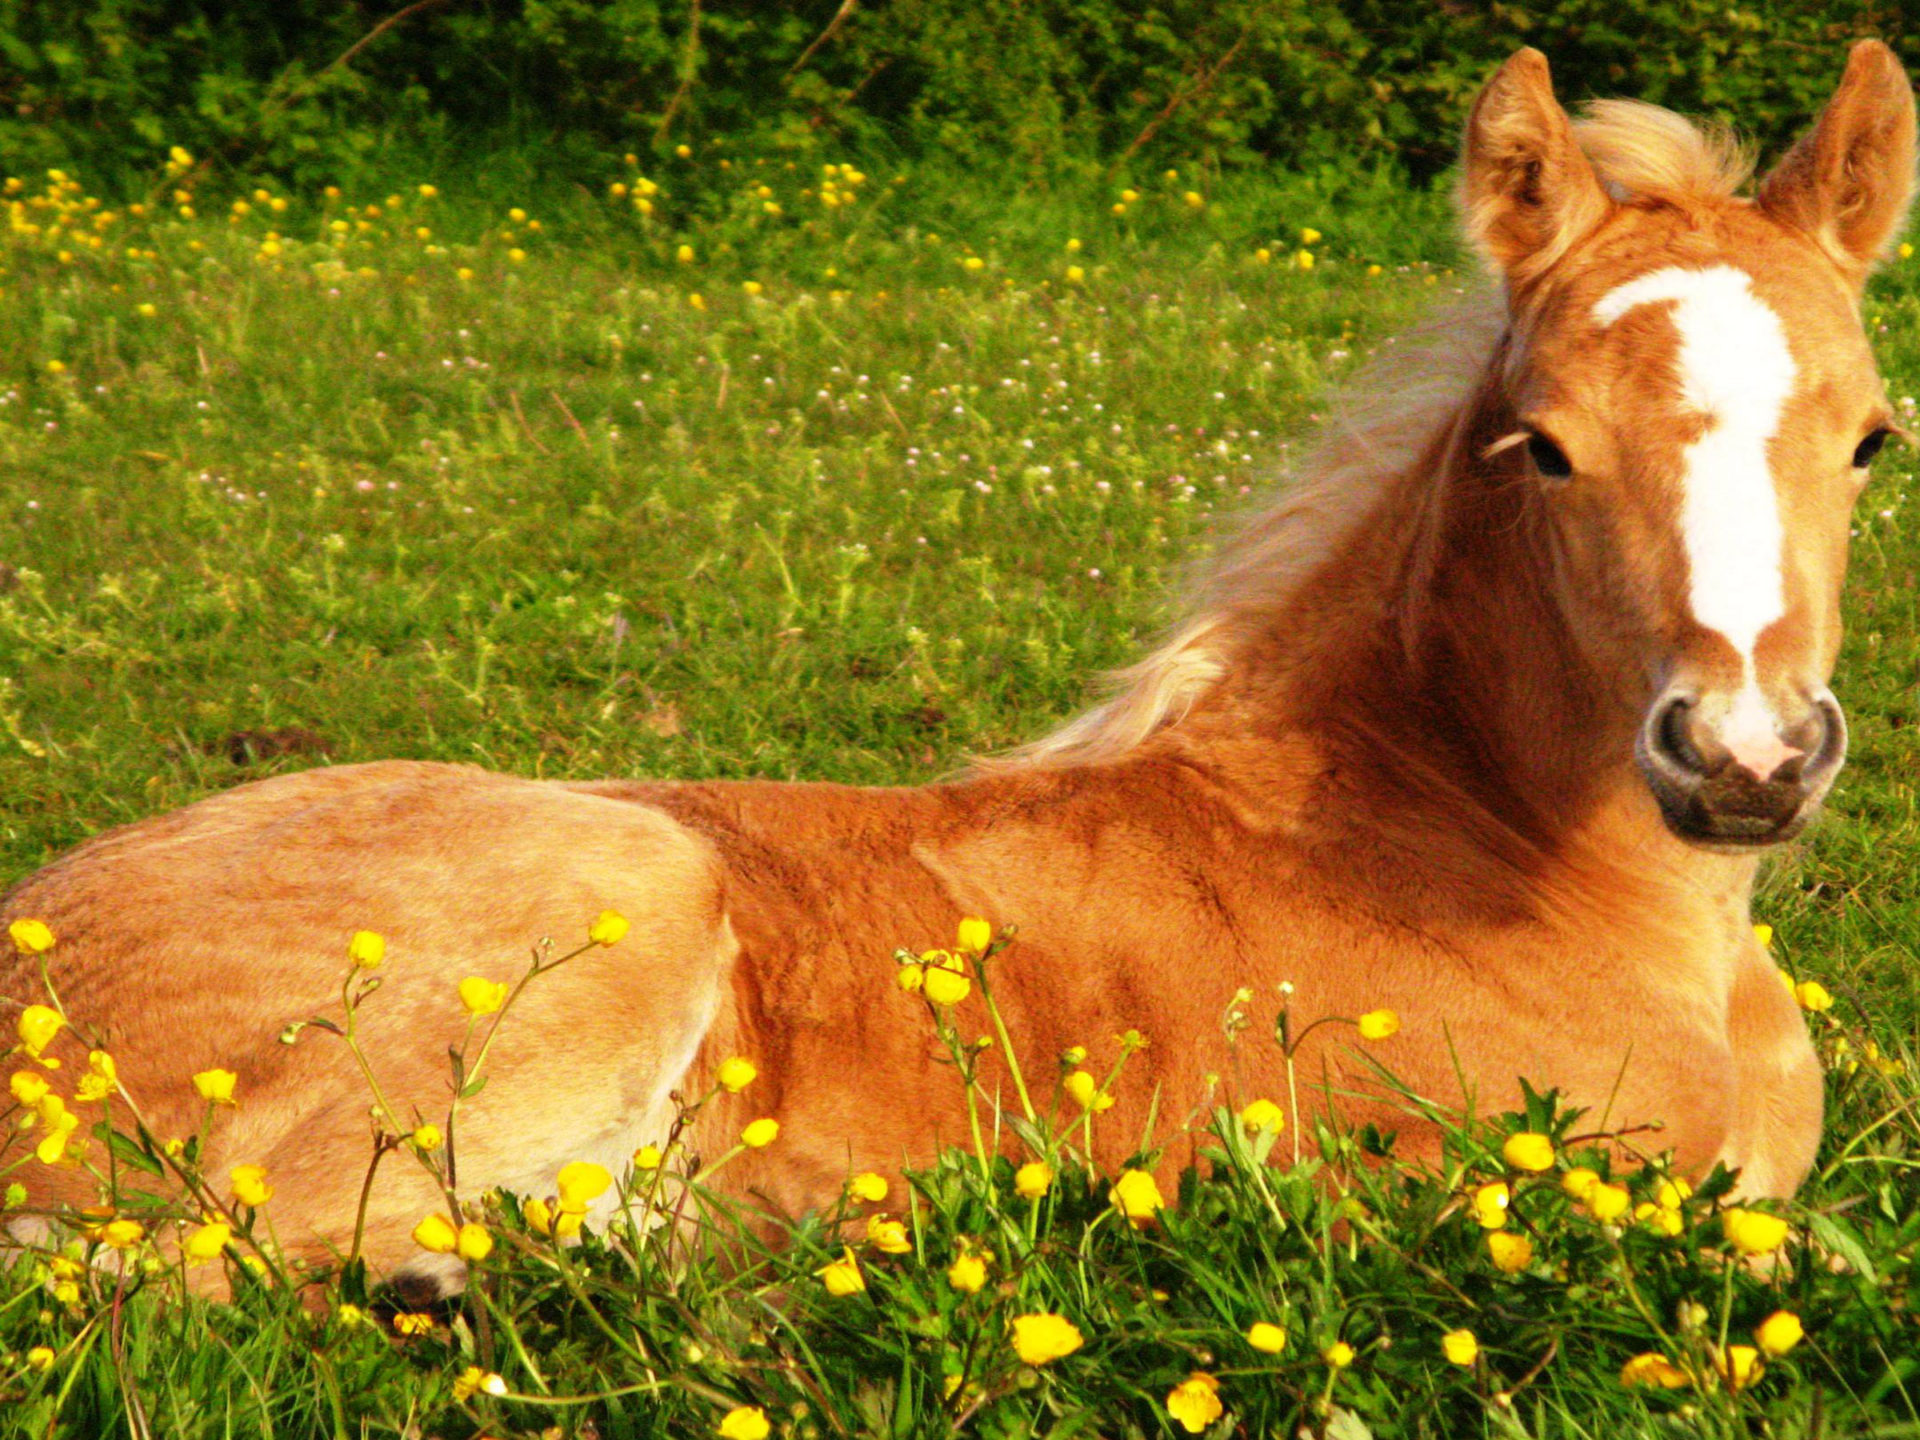 Cute Lock Screen Wallpaper For Ipad Small Cute Foal In A Green Grass Wallpaper Hd